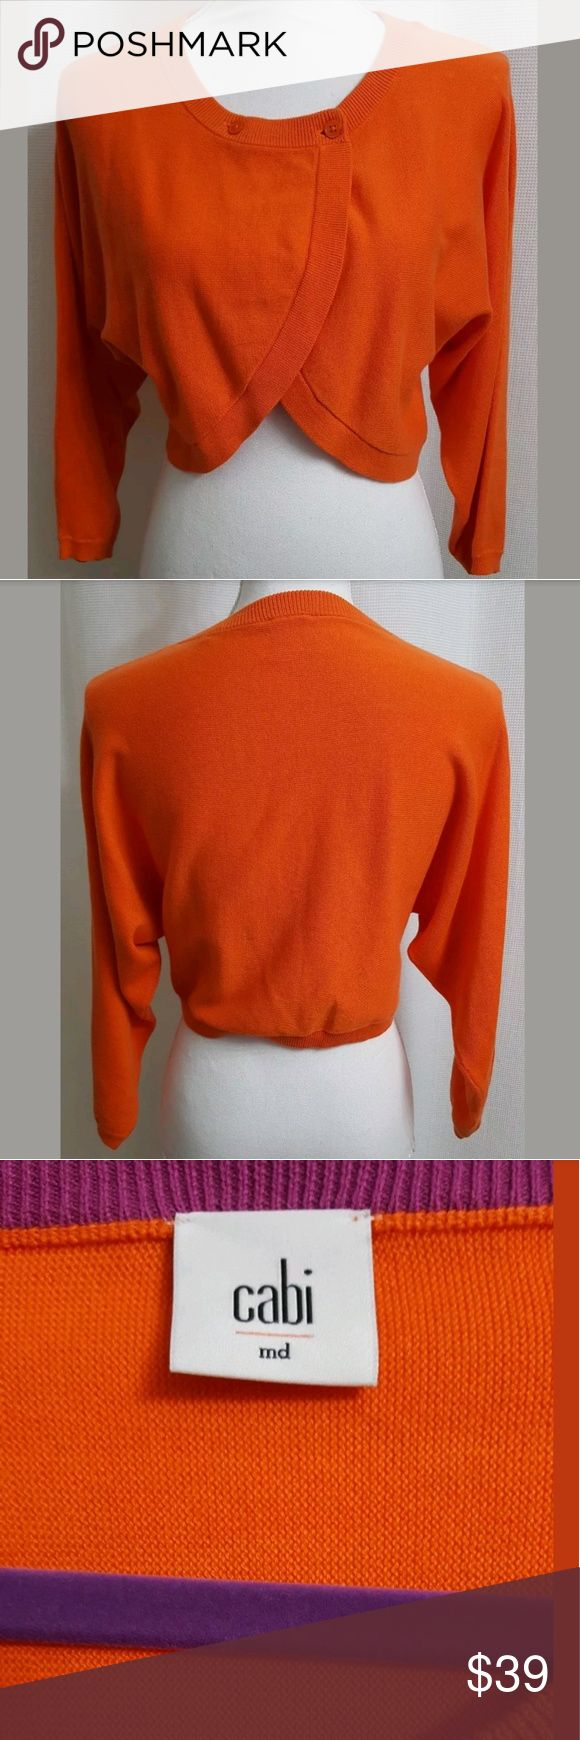 """Cabi # 5008 Piccolo Shrug Cardigan Sweater MEDIUM This is a Cabi # 5008 Piccolo Shrug Cardigan Sweater Tiger Lilly Orange MEDIUM (#J). There are no stains, snags, or holes.  Measurements: (When laid flat) Armpit to armpit: 20"""" Top of shoulder to bottom: 16.5""""  Product material: 100% Cotton   Inventory #: J CAbi Sweaters Cardigans"""